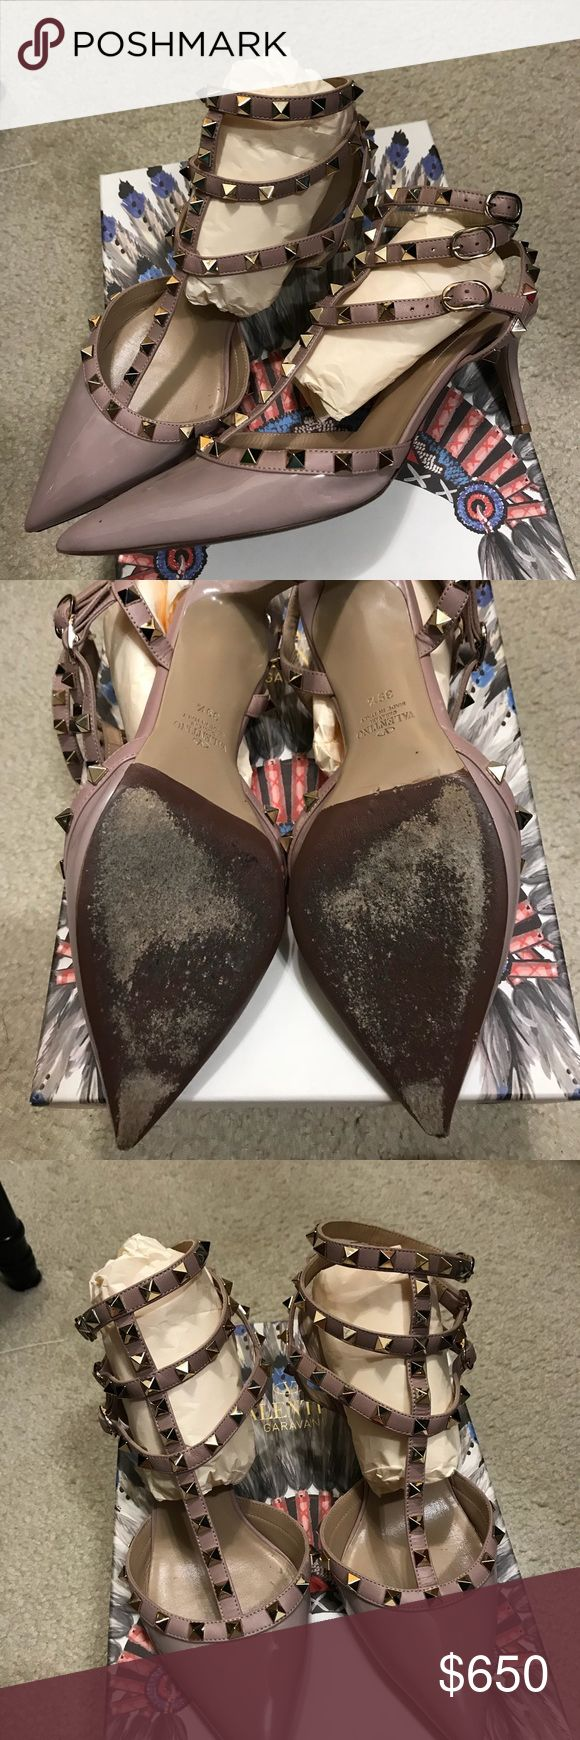 ⚡️⚡️⚡️Valentino Rockstud Caged Pumps Preloved condition due to bottom wear but lots of life left. Cobbler can easily revive to former beauty. Flaws shown on pic. Will come with non-Valentino box and dustbag Valentino Shoes Heels